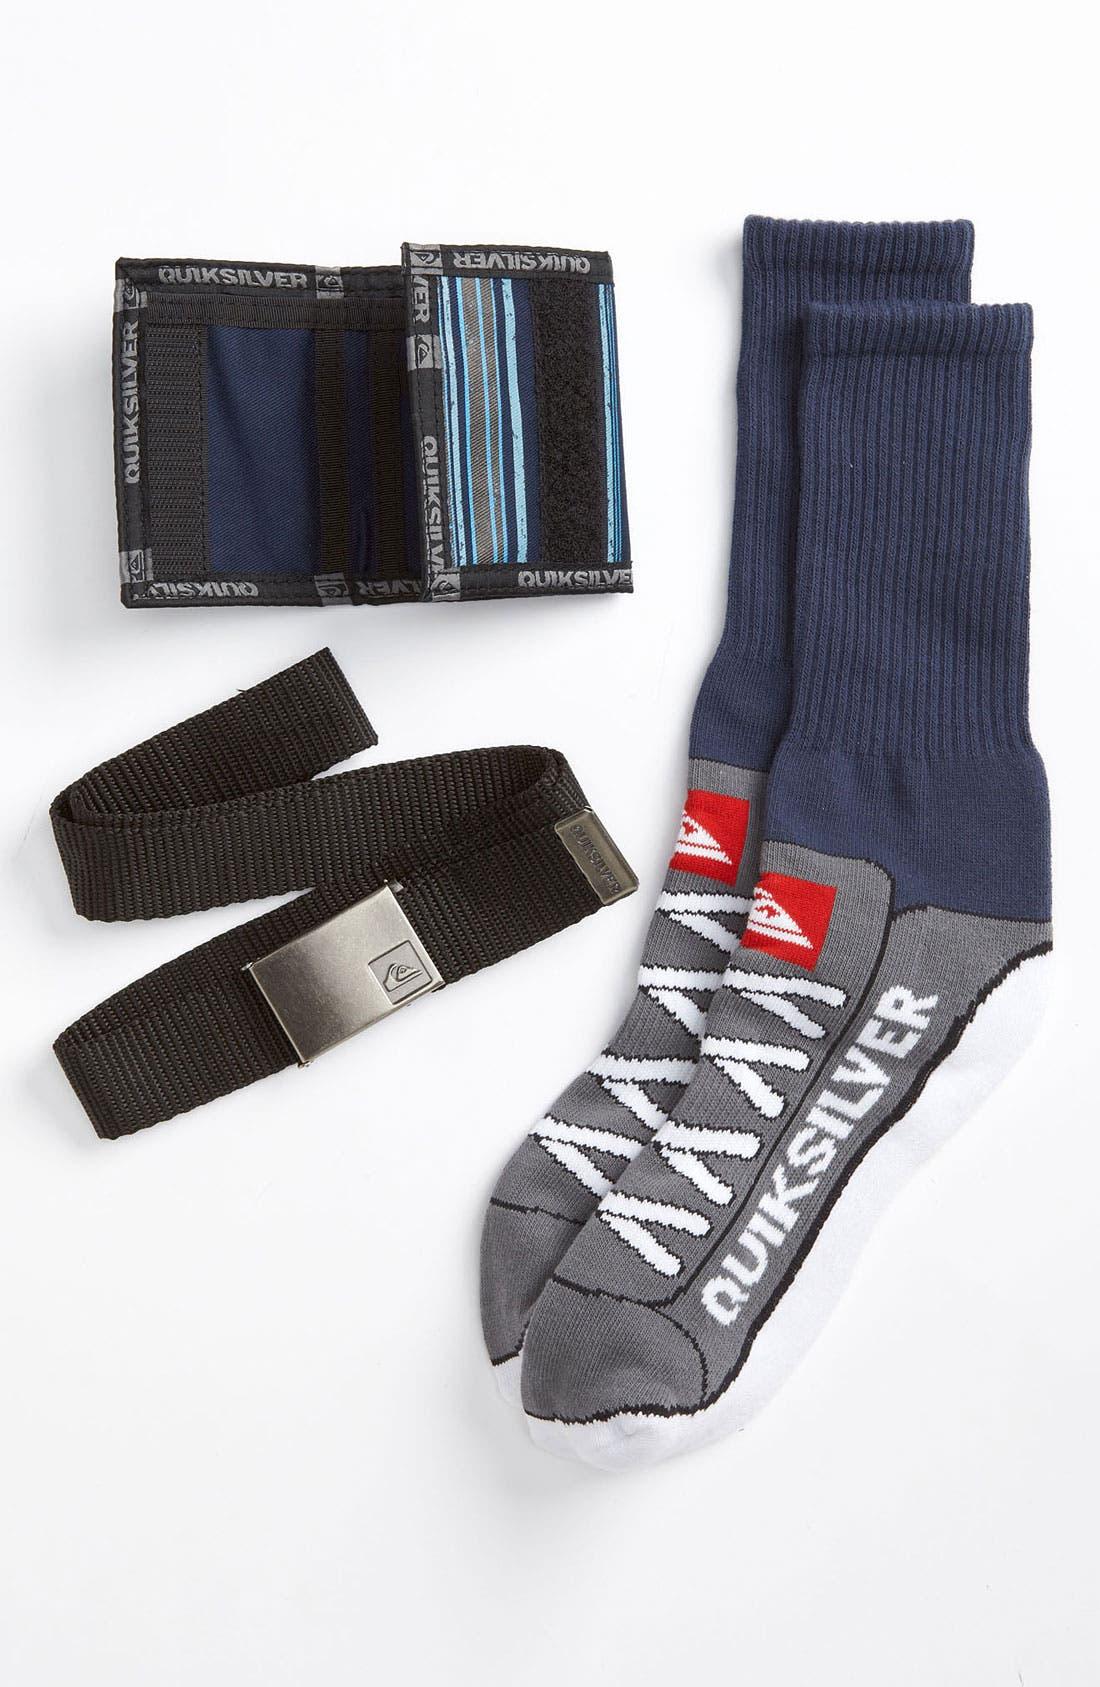 Alternate Image 1 Selected - Quiksilver Belt, Wallet & Socks Gift Pack (Big Boys)